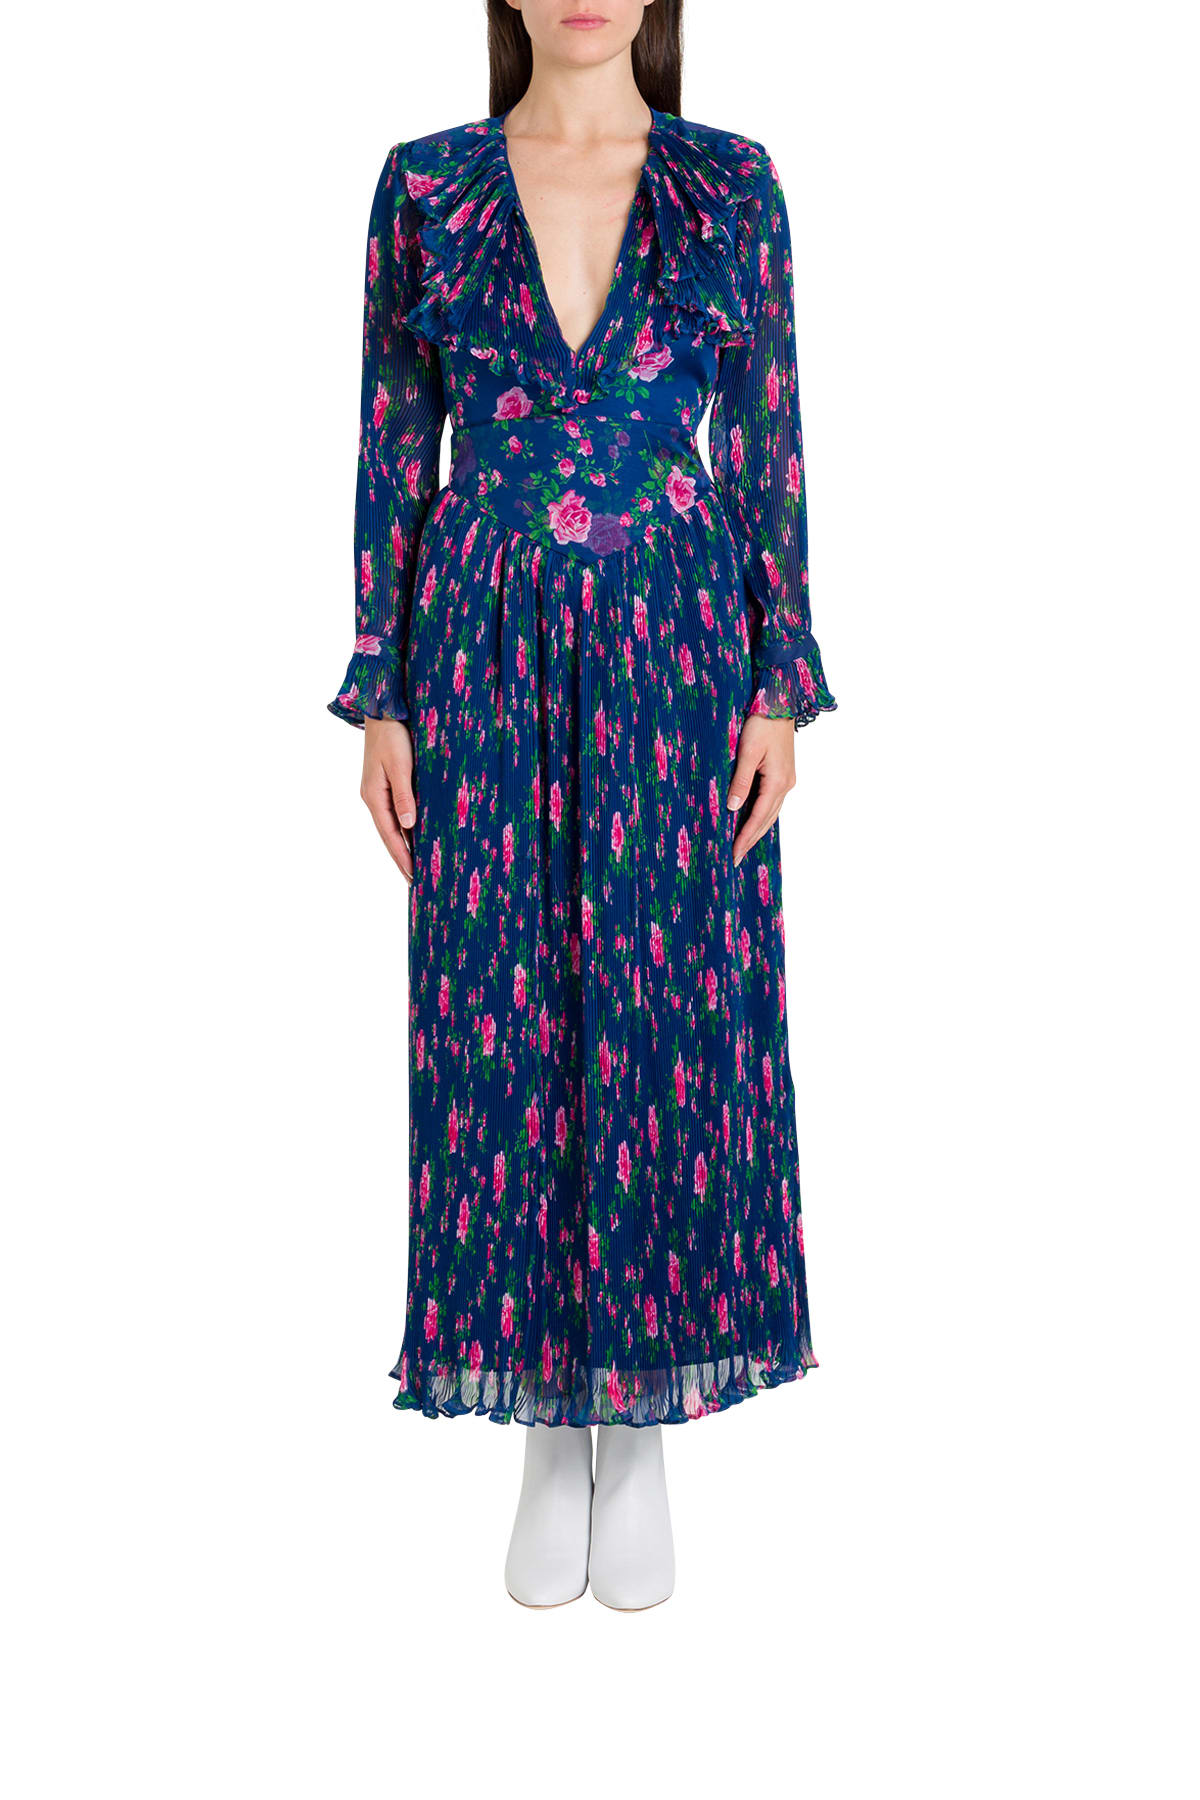 Buy Philosophy di Lorenzo Serafini Maxi Dress In Floral Voile online, shop Philosophy di Lorenzo Serafini with free shipping